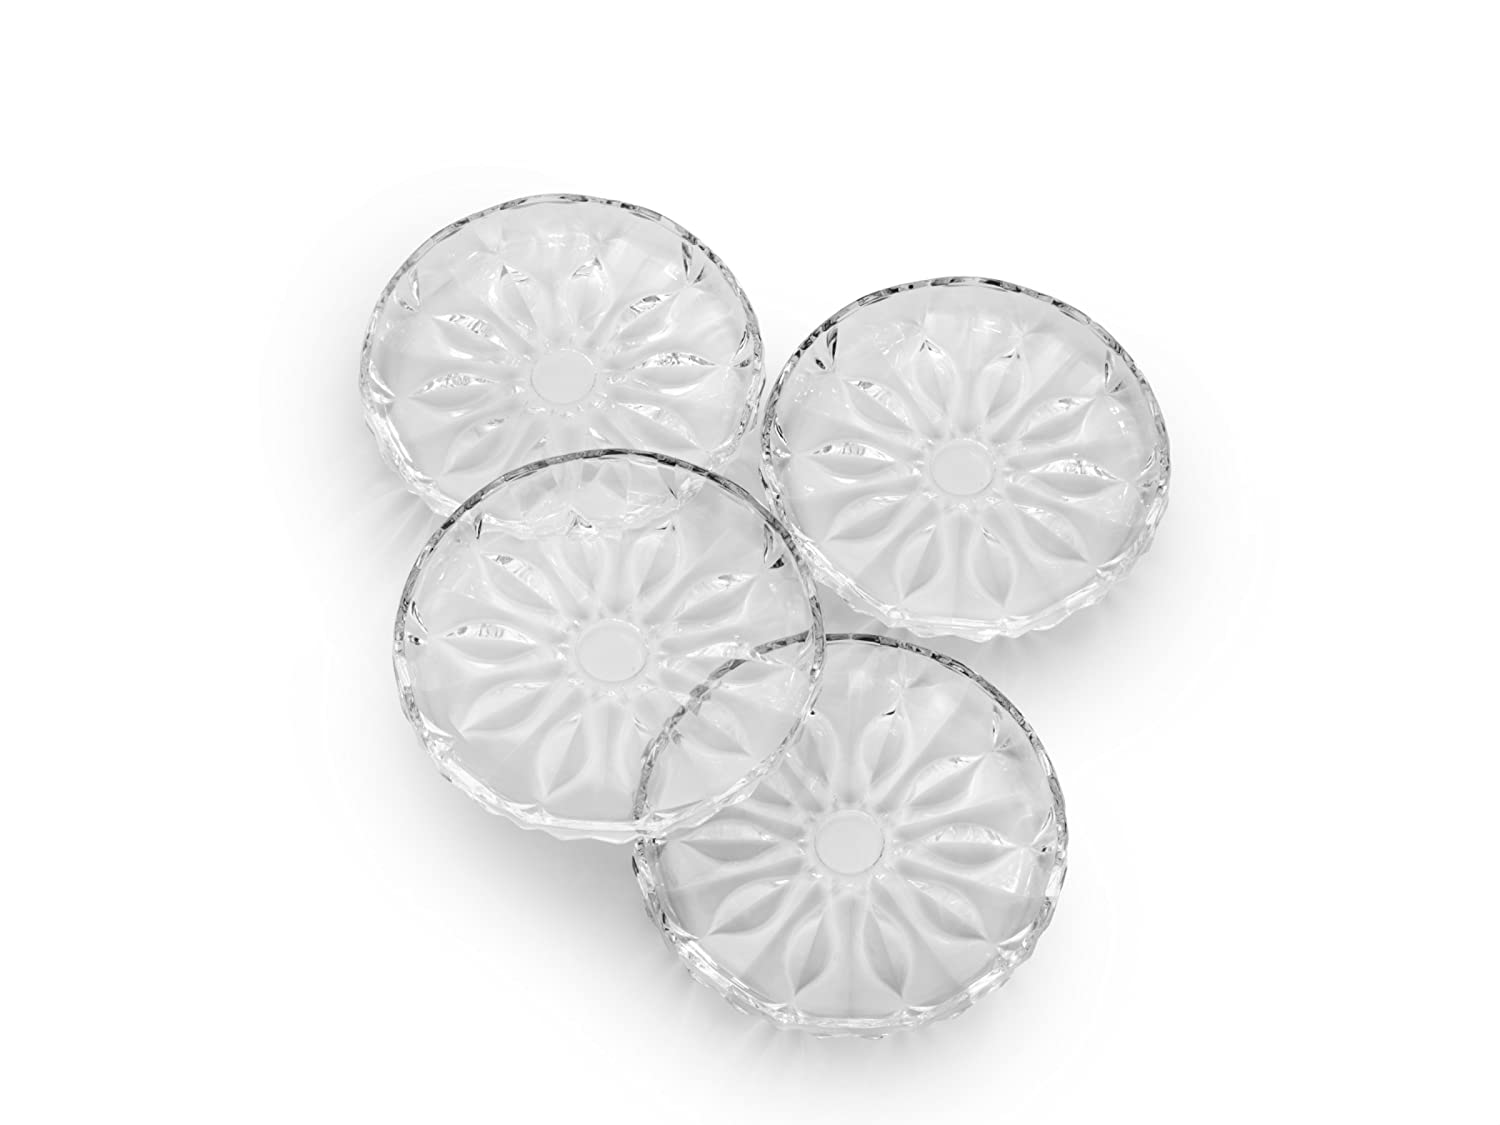 Celebrations by Mikasa Blossom Glass Appetizer Plate, 7-Inch, Set of 4 5192099